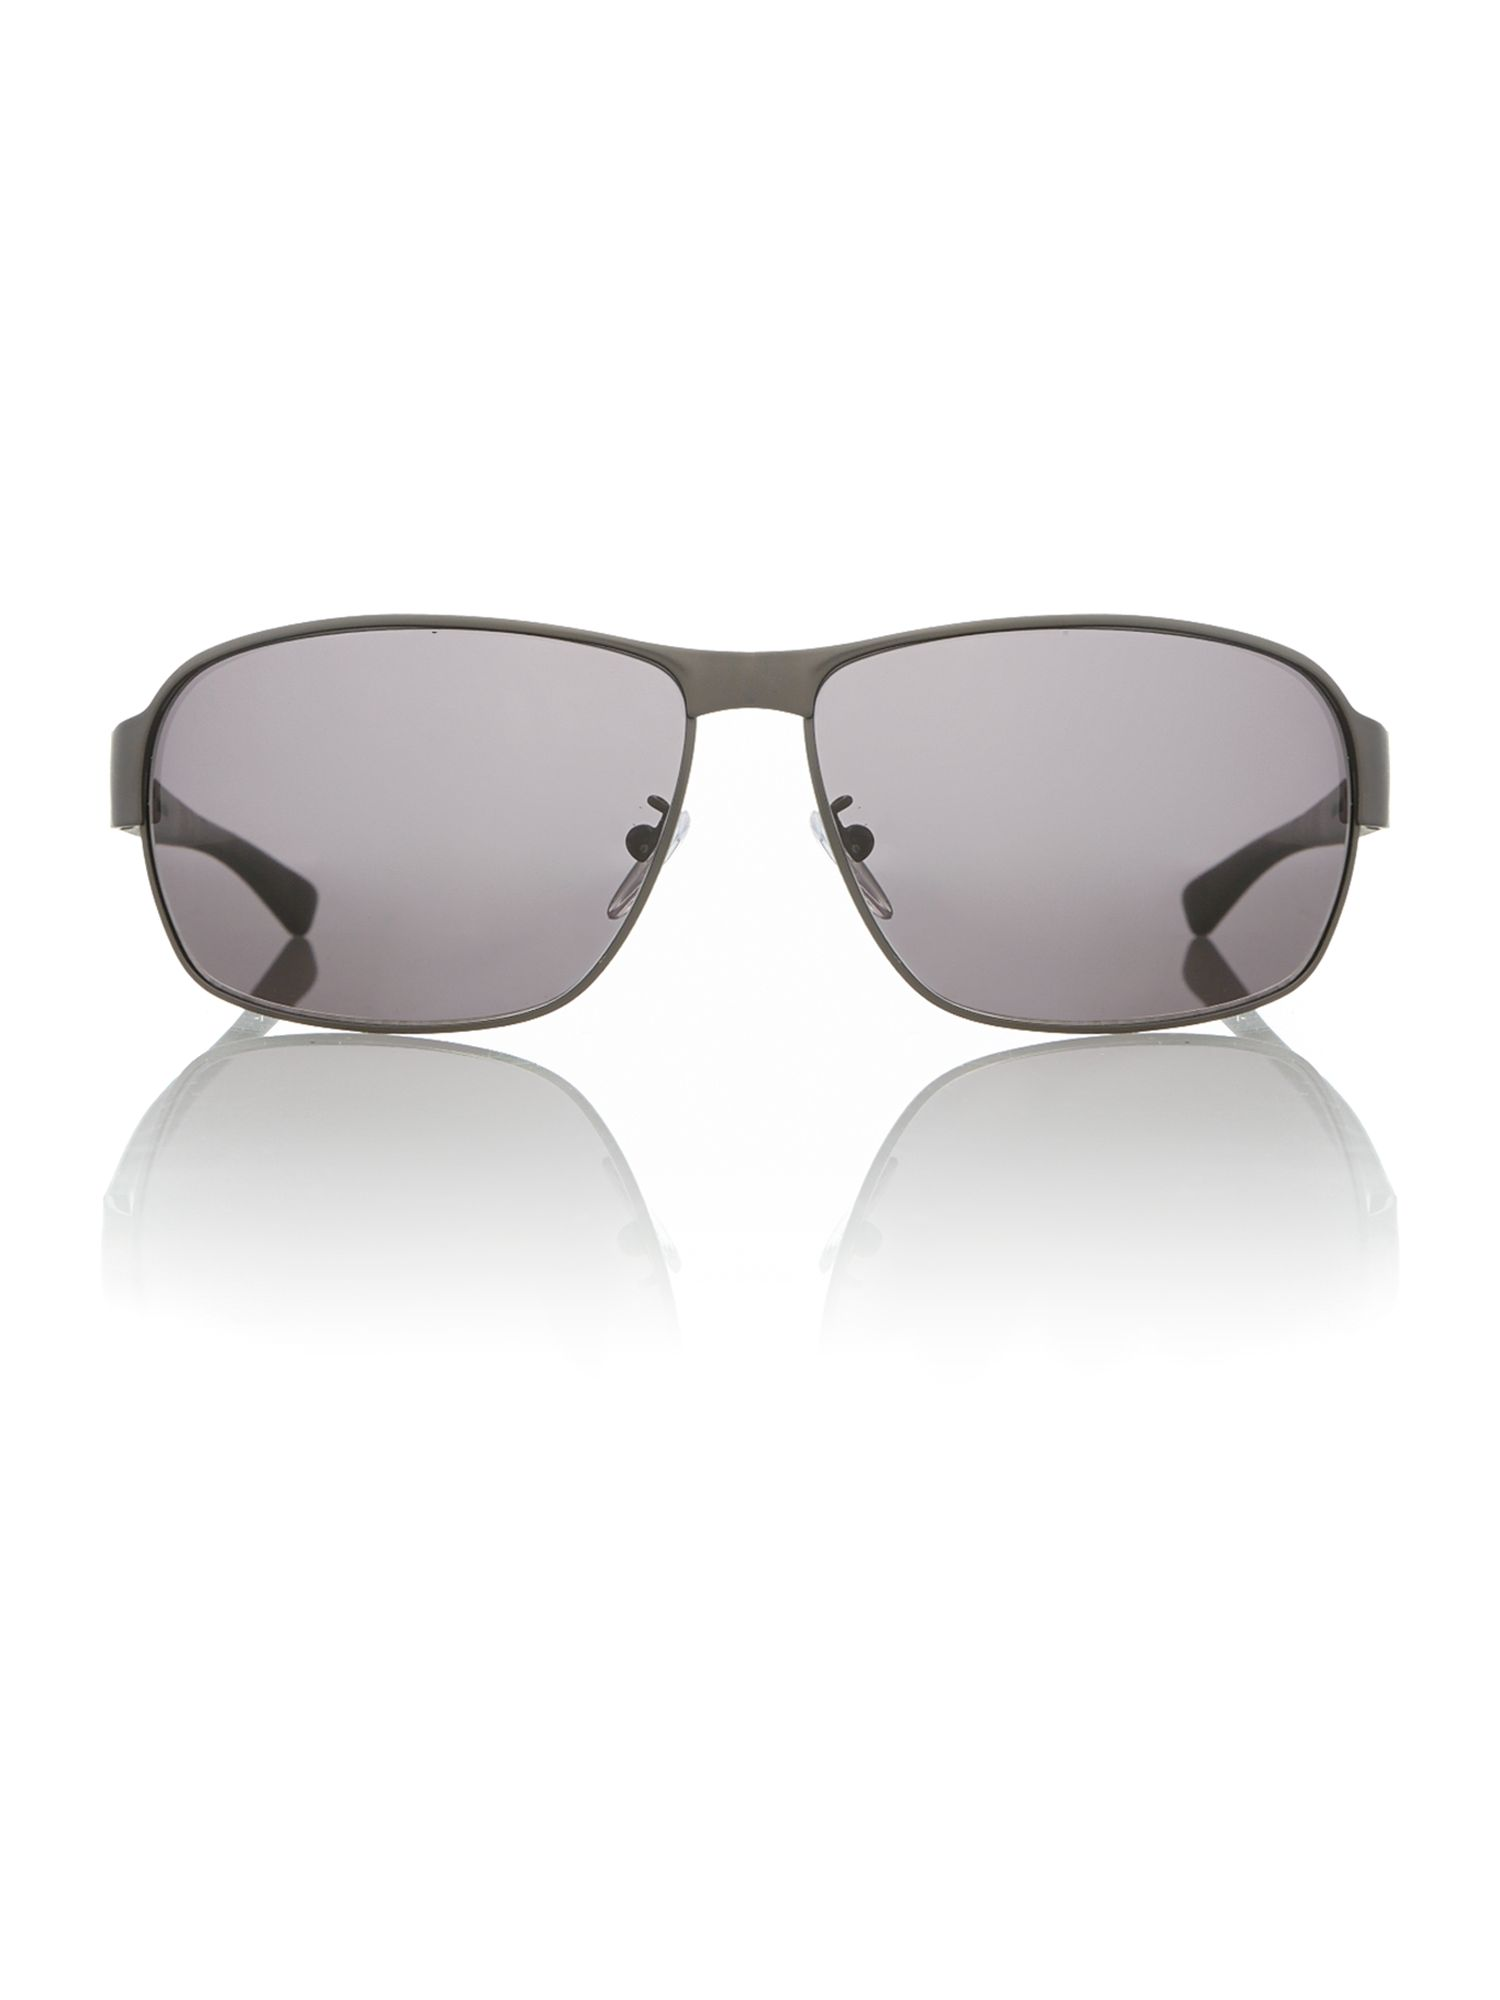 Unisex S8743 browm rectangle sunglasses